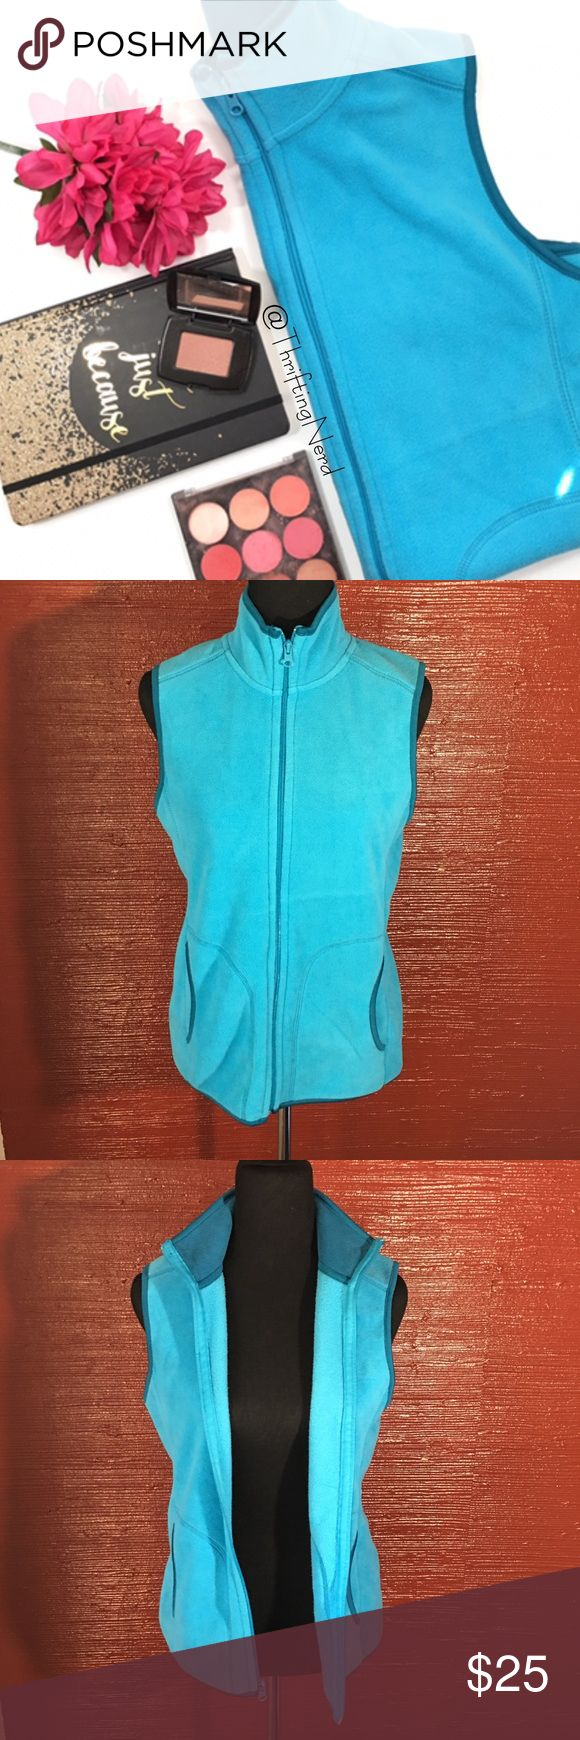 Old Navy Fleece Blue Vest * Old Navy brand * Fleece vest * Light blue with a darker blue trim * Size Medium * Made in China * Front pockets * Zip up in front * 100% polyester  * Pre-Owned, excellent condition Old Navy Jackets & Coats Vests